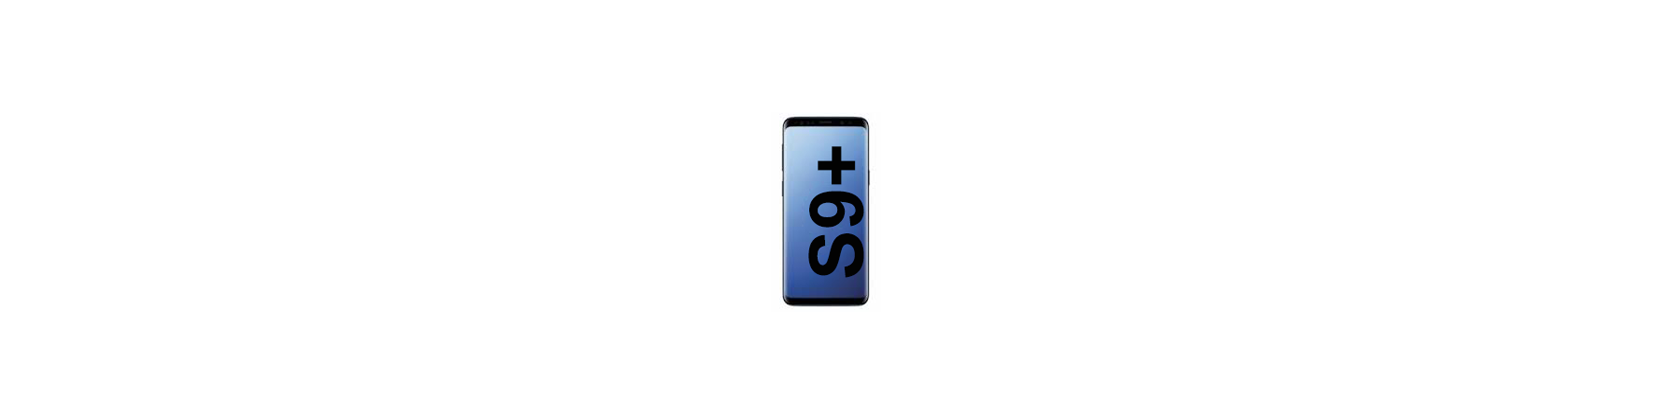 Spare parts for Samsung Galaxy S9 Plus G965F